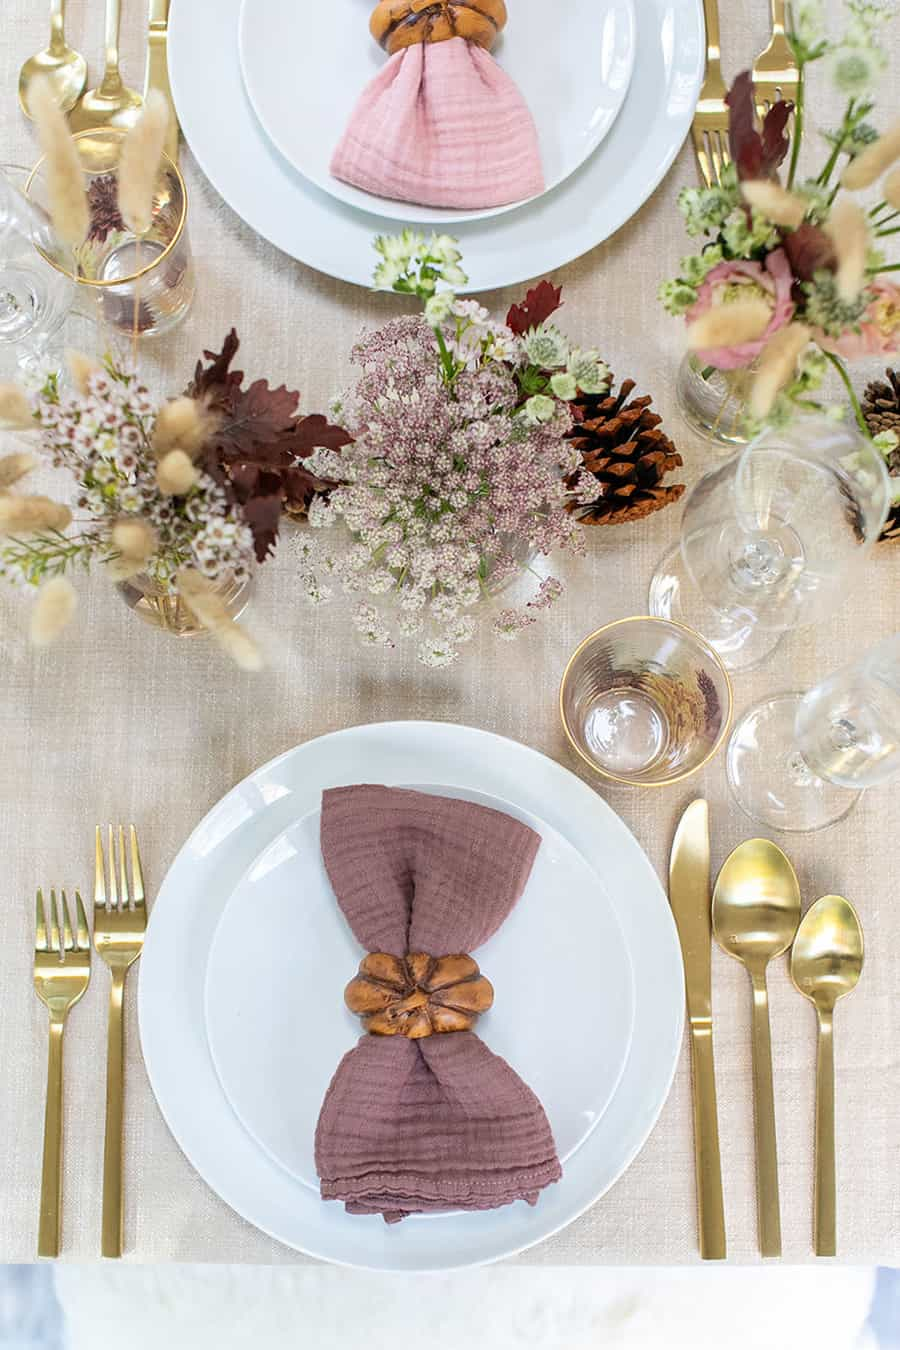 Simple fall Thanksgiving table setting, white plates, gold flatware and pretty flowers.